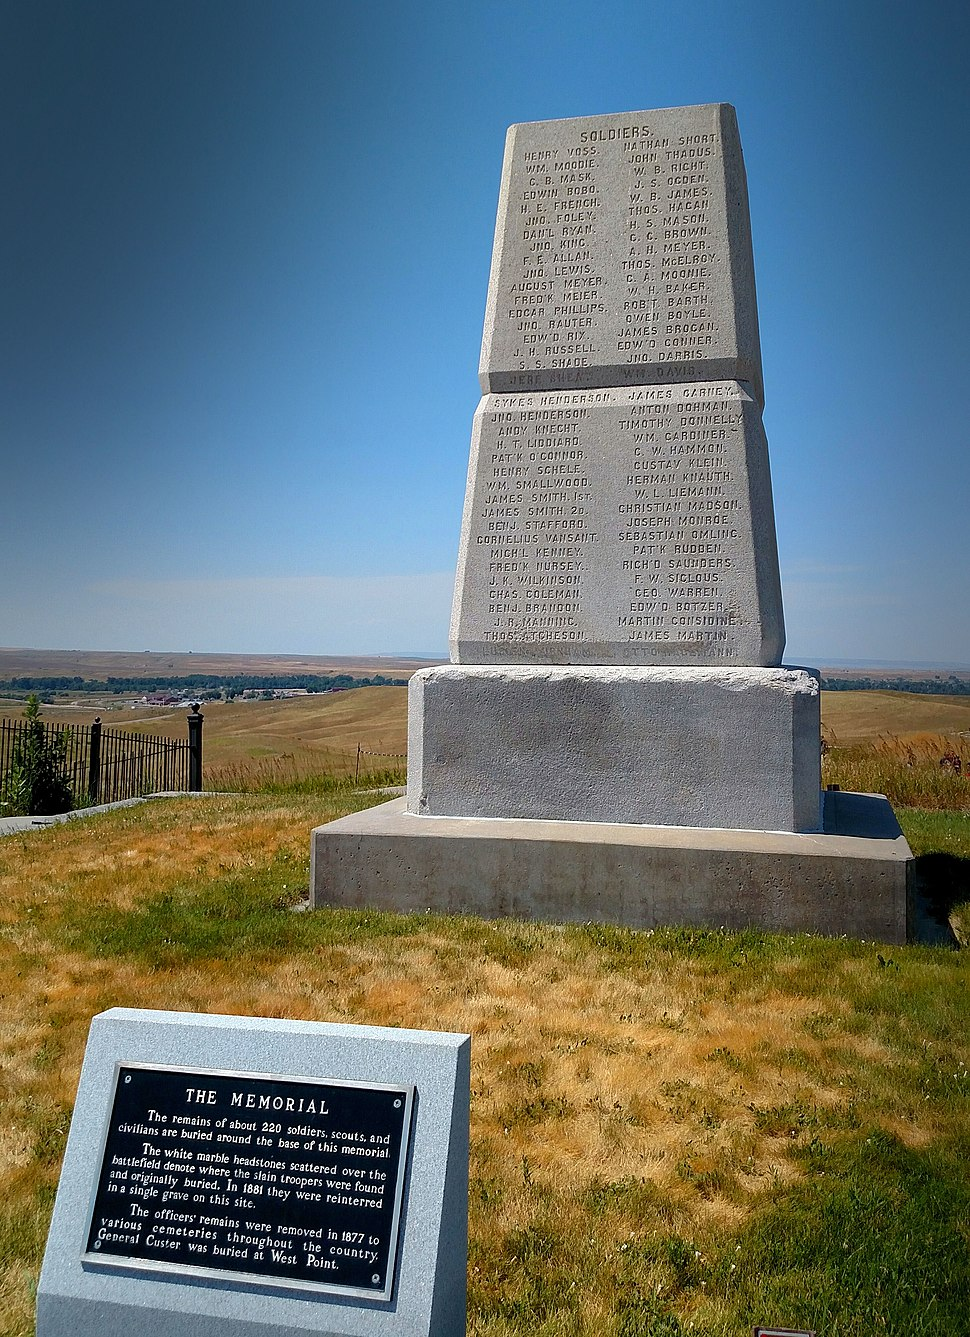 Soldier memorial little bighorn 2